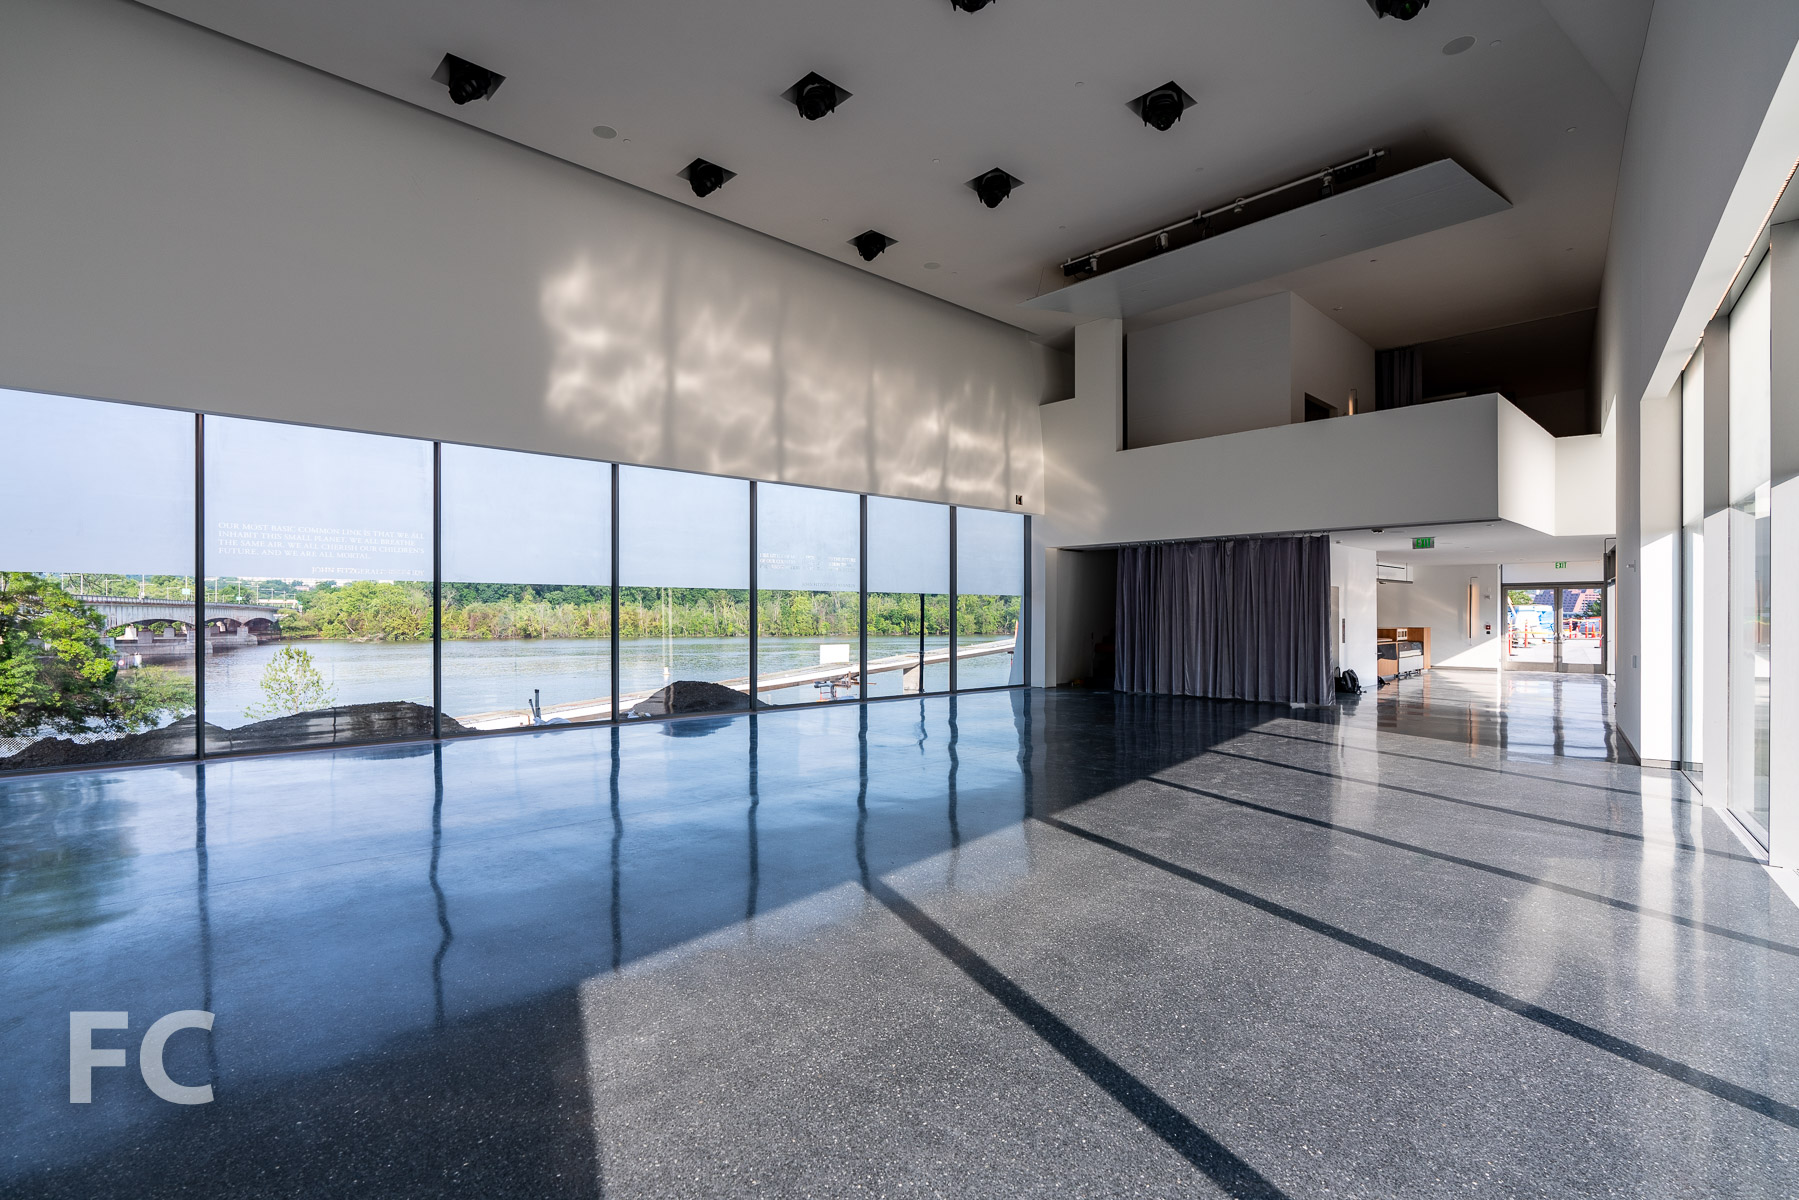 20190519-The Reach at the Kennedy Center-DSC06385-HDR.jpg